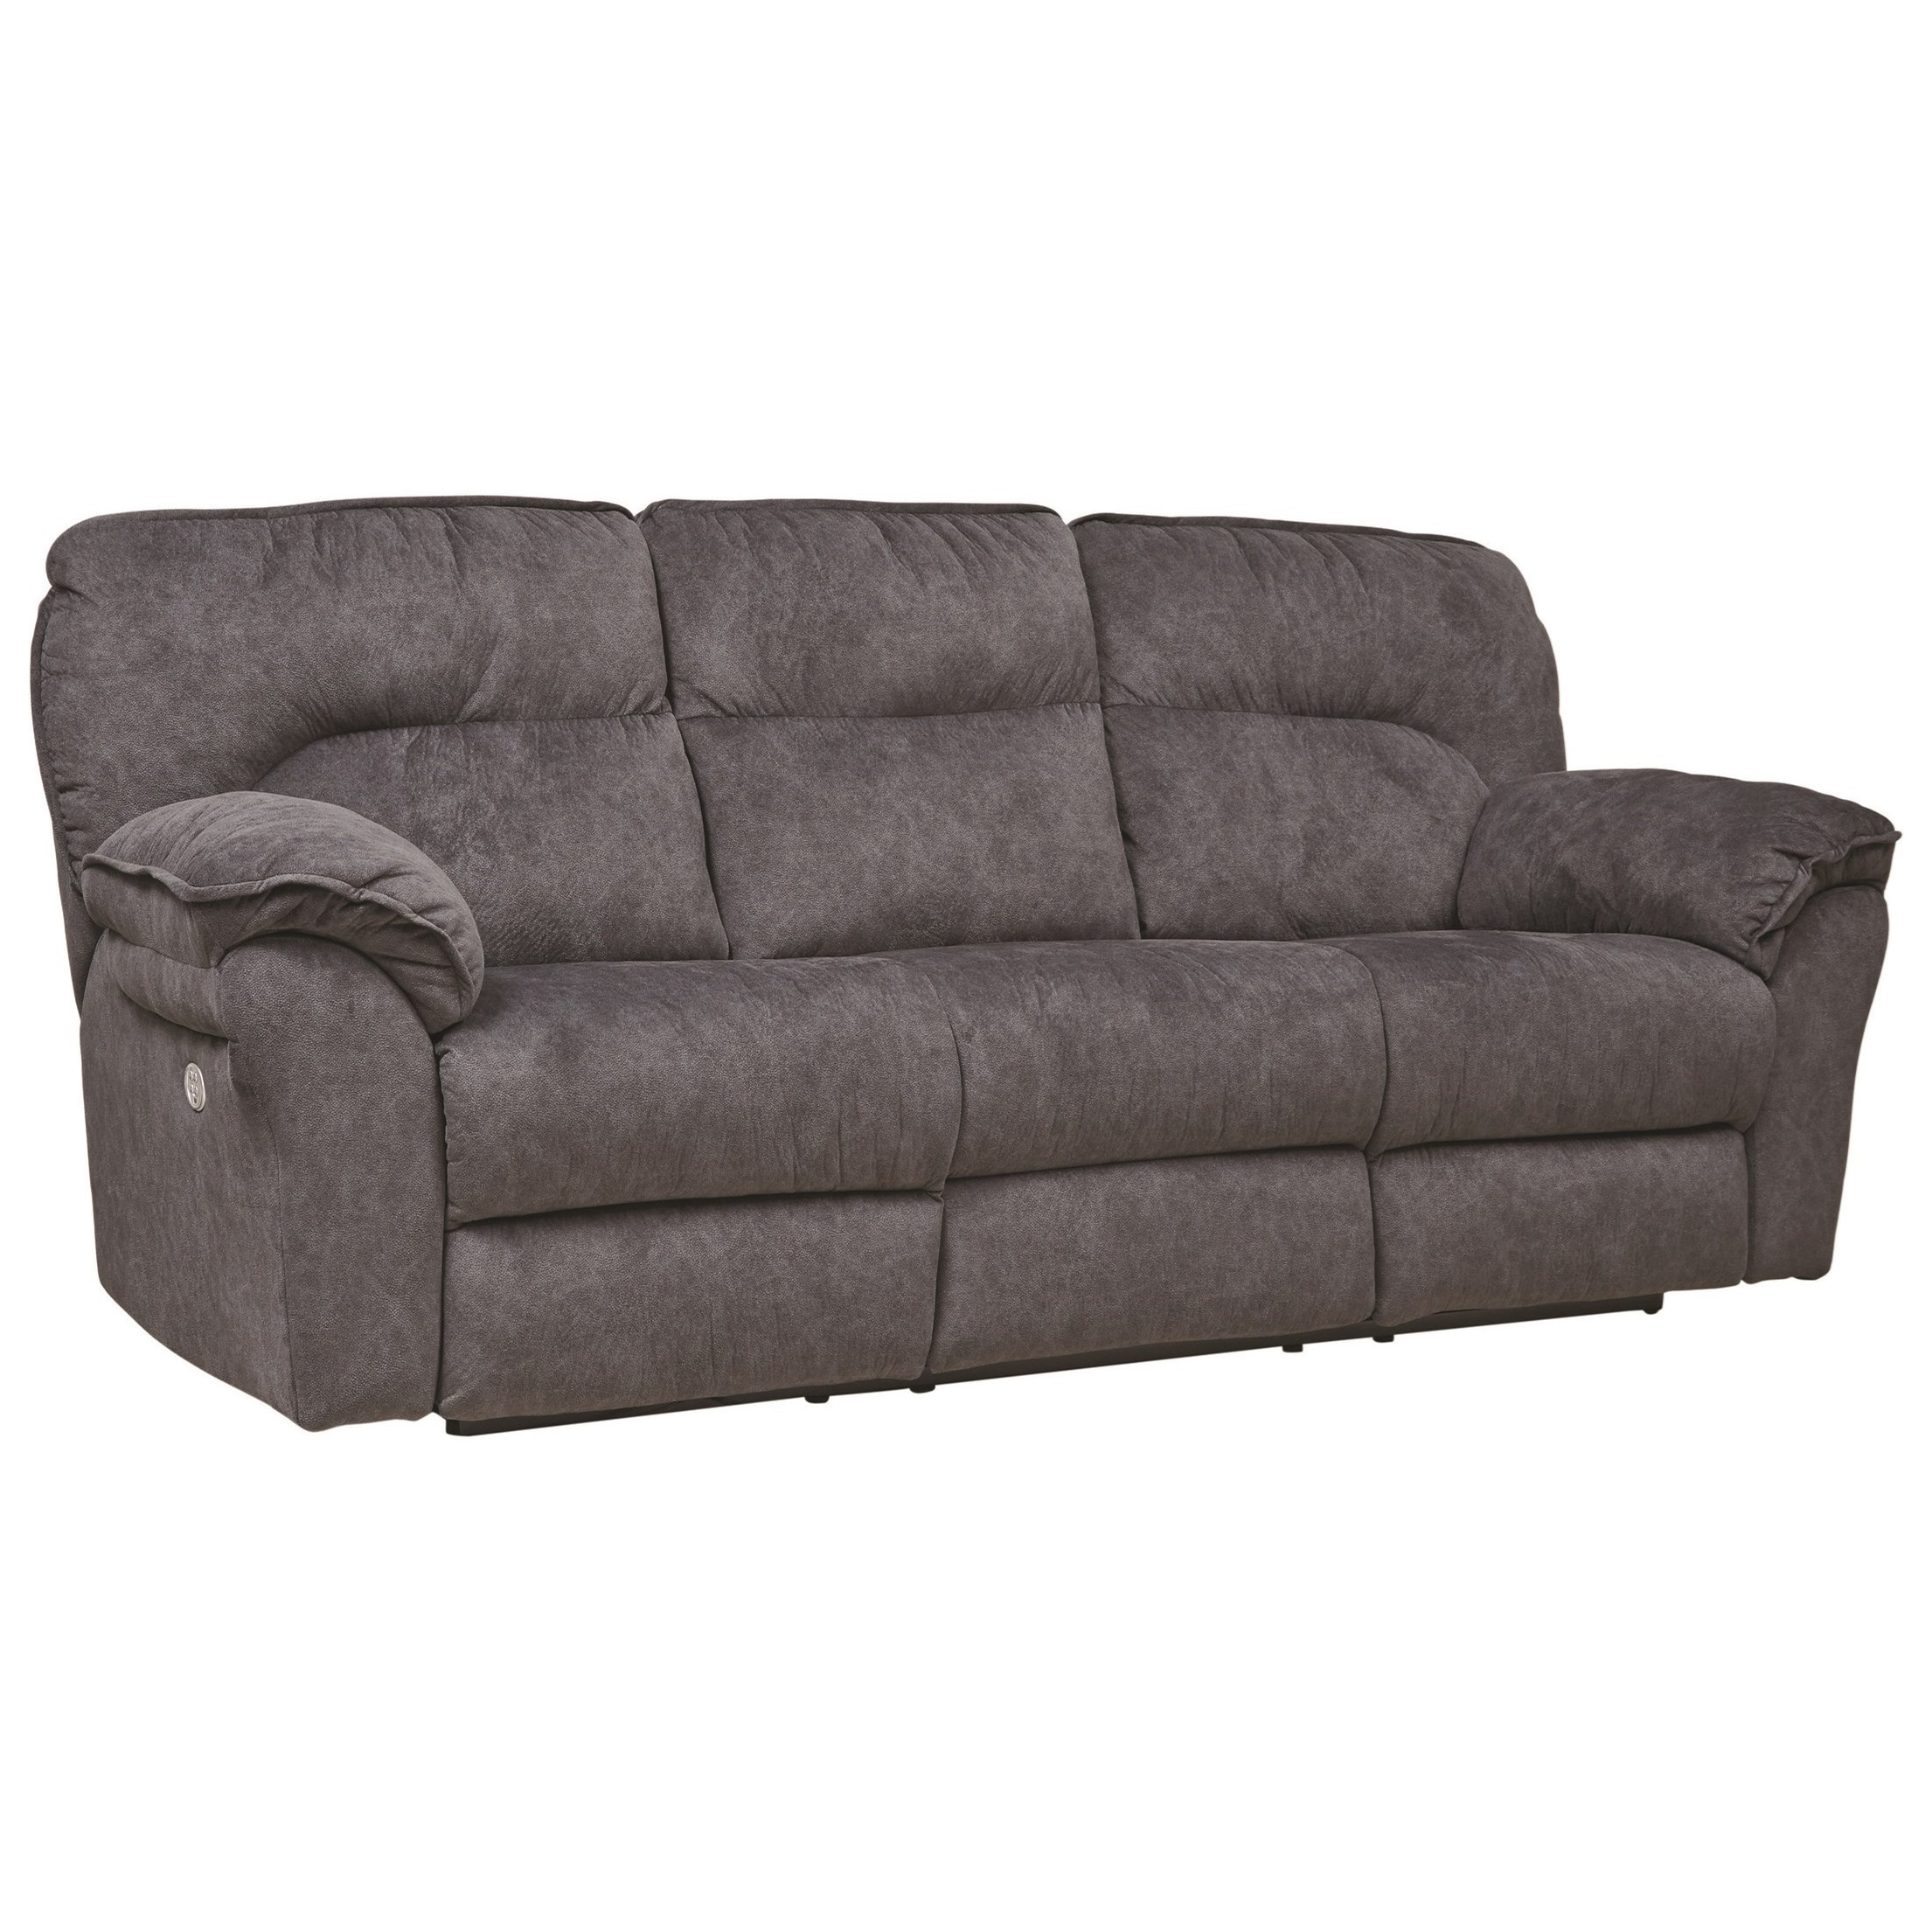 Full Ride Power Headrest Double Reclining Sofa SoCozi by Southern Motion at H.L. Stephens